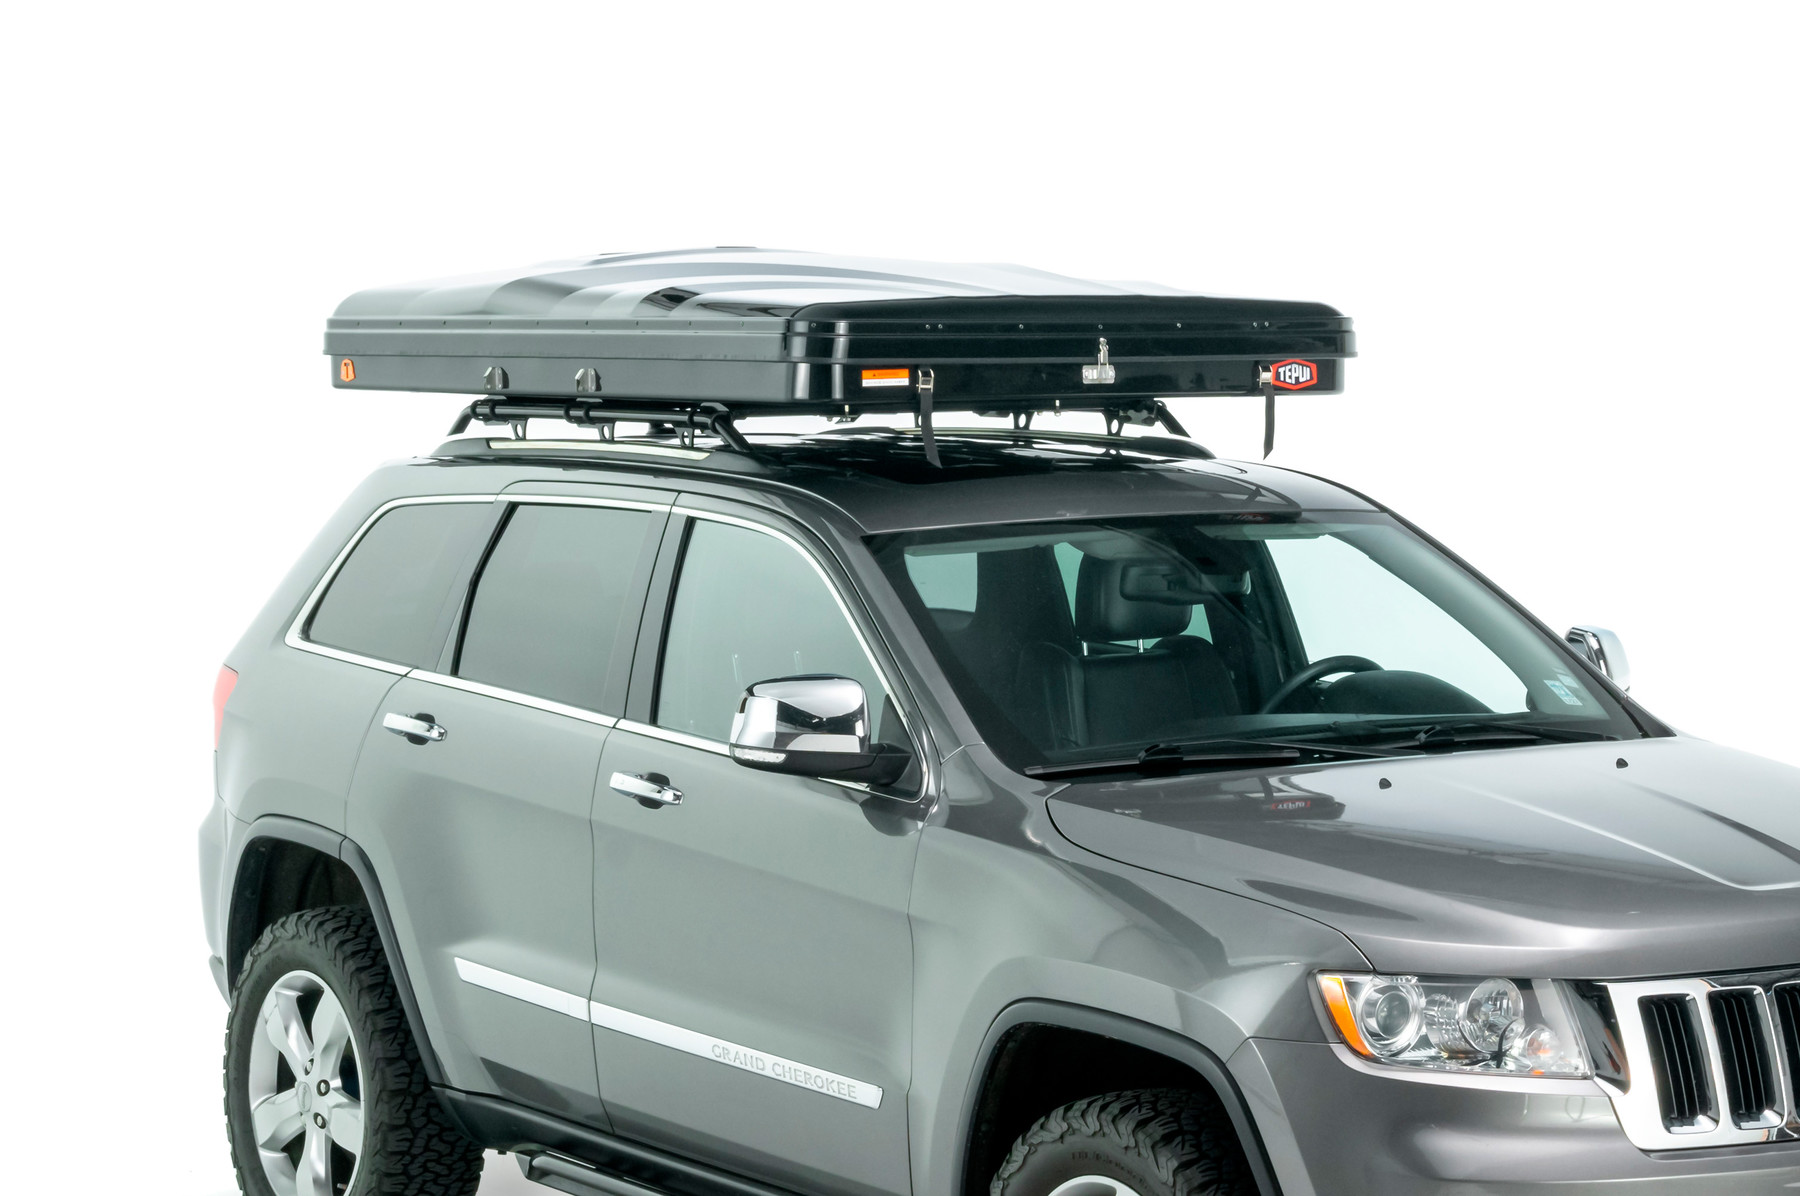 Tepui rooftop tent hybox in green shown installed on a vehicle.